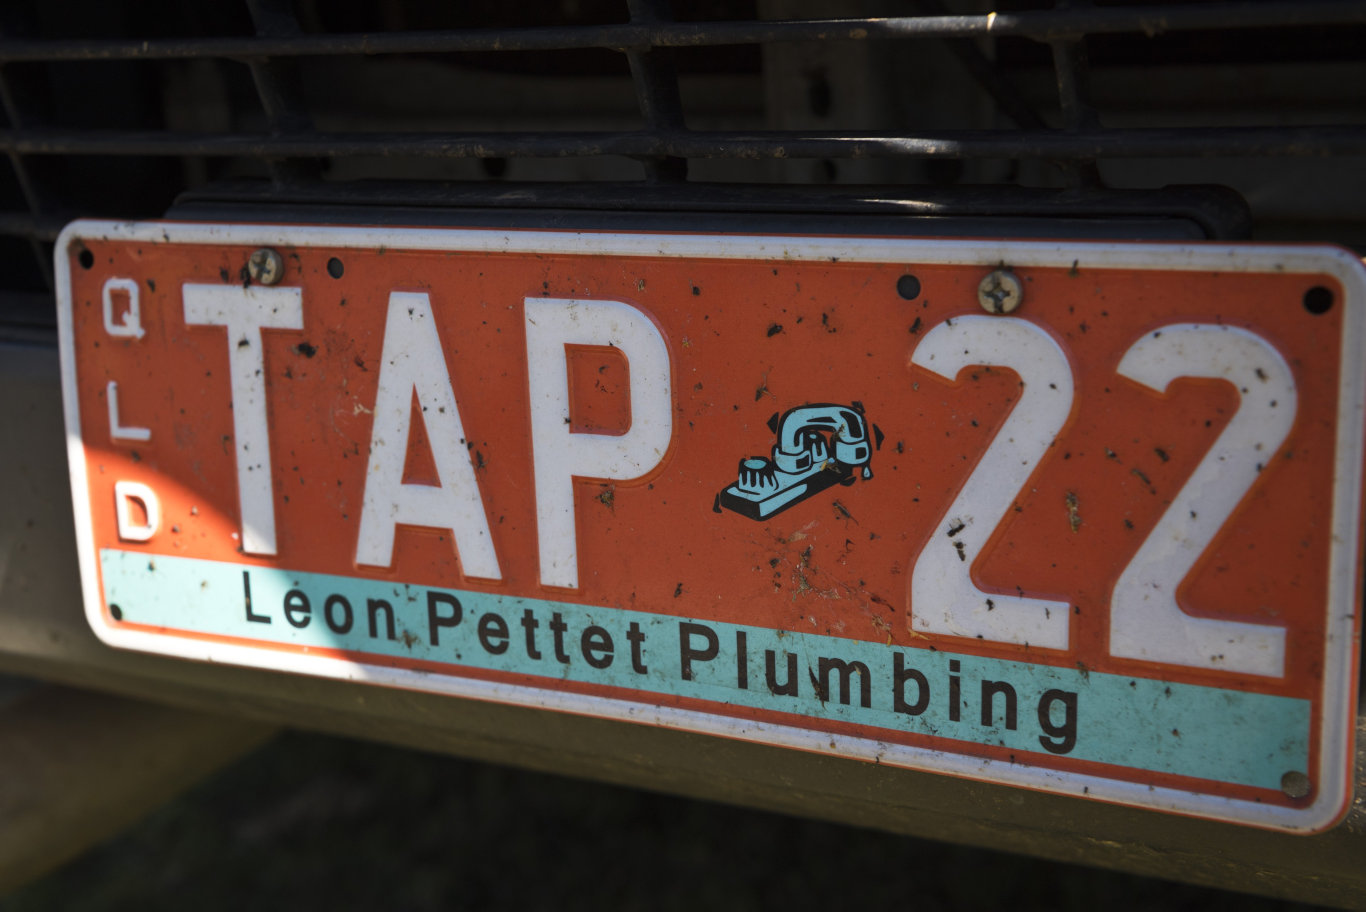 A number plate on one of the Leon Pettet Plumbing vehicles after they are named the best plumber in The Chronicle's 2020 Best of Toowoomba series, Monday, June 15, 2020. Picture: Kevin Farmer